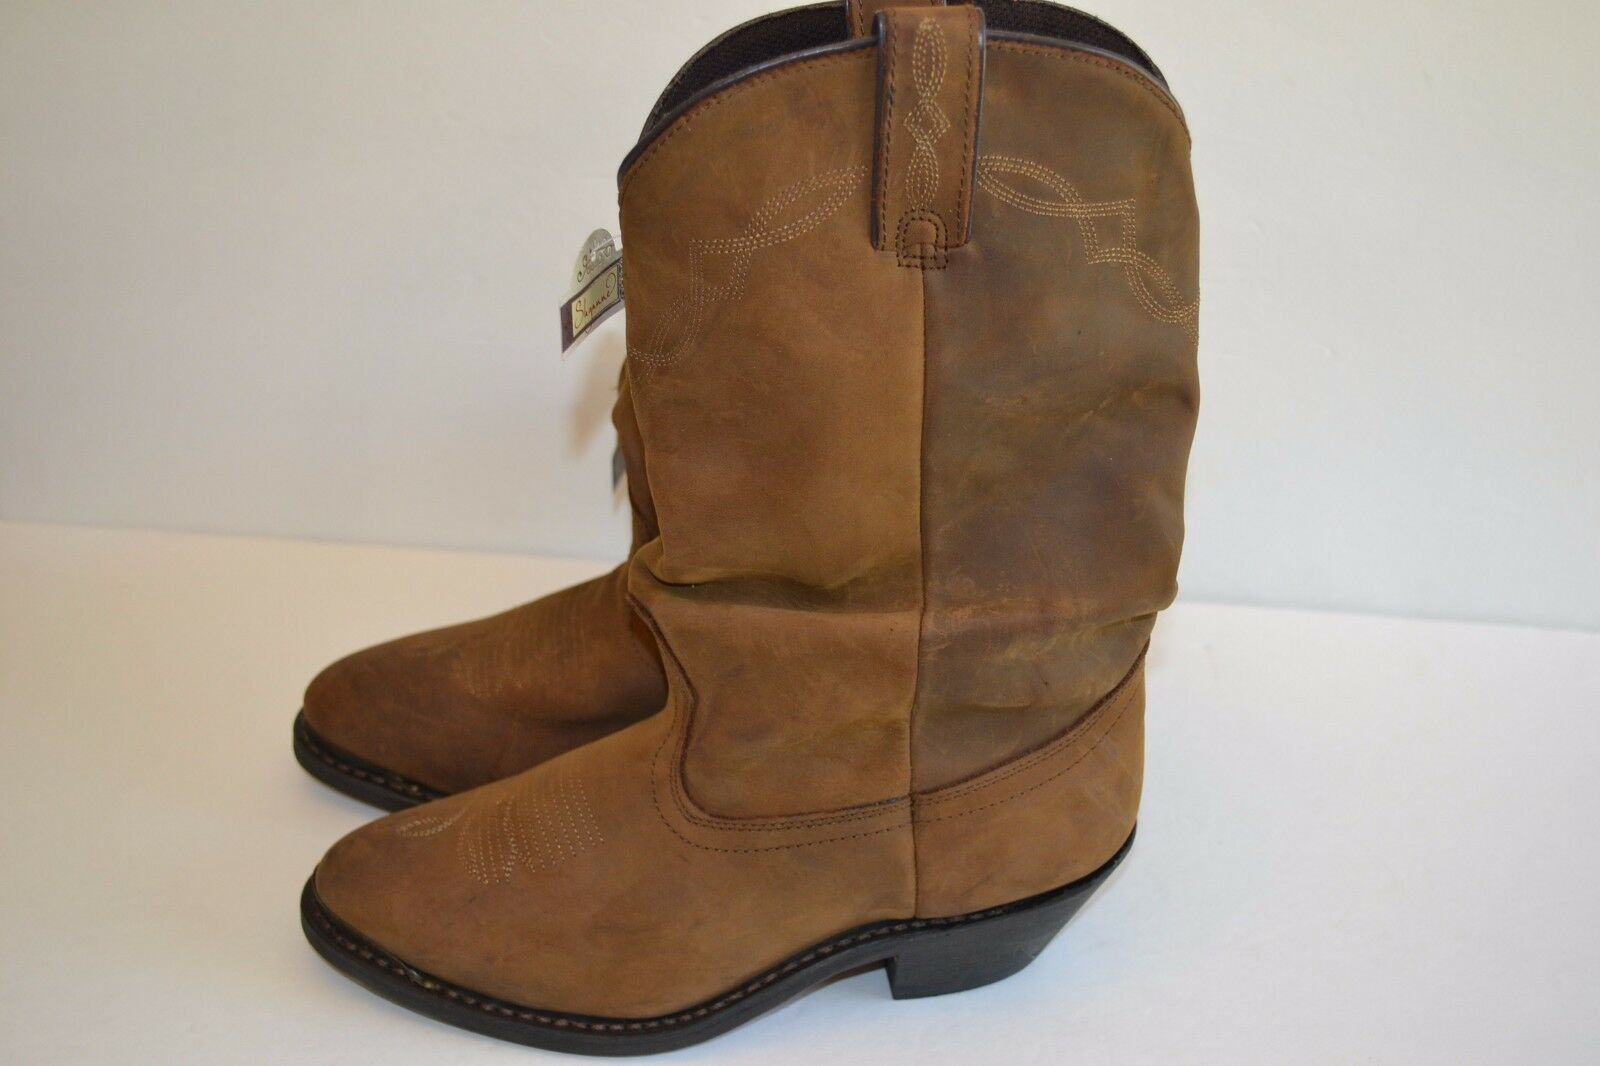 SHYANNE WOMENS Slouch FASHION BROWN Western Distressed Leather Boots SZ 7.5 M